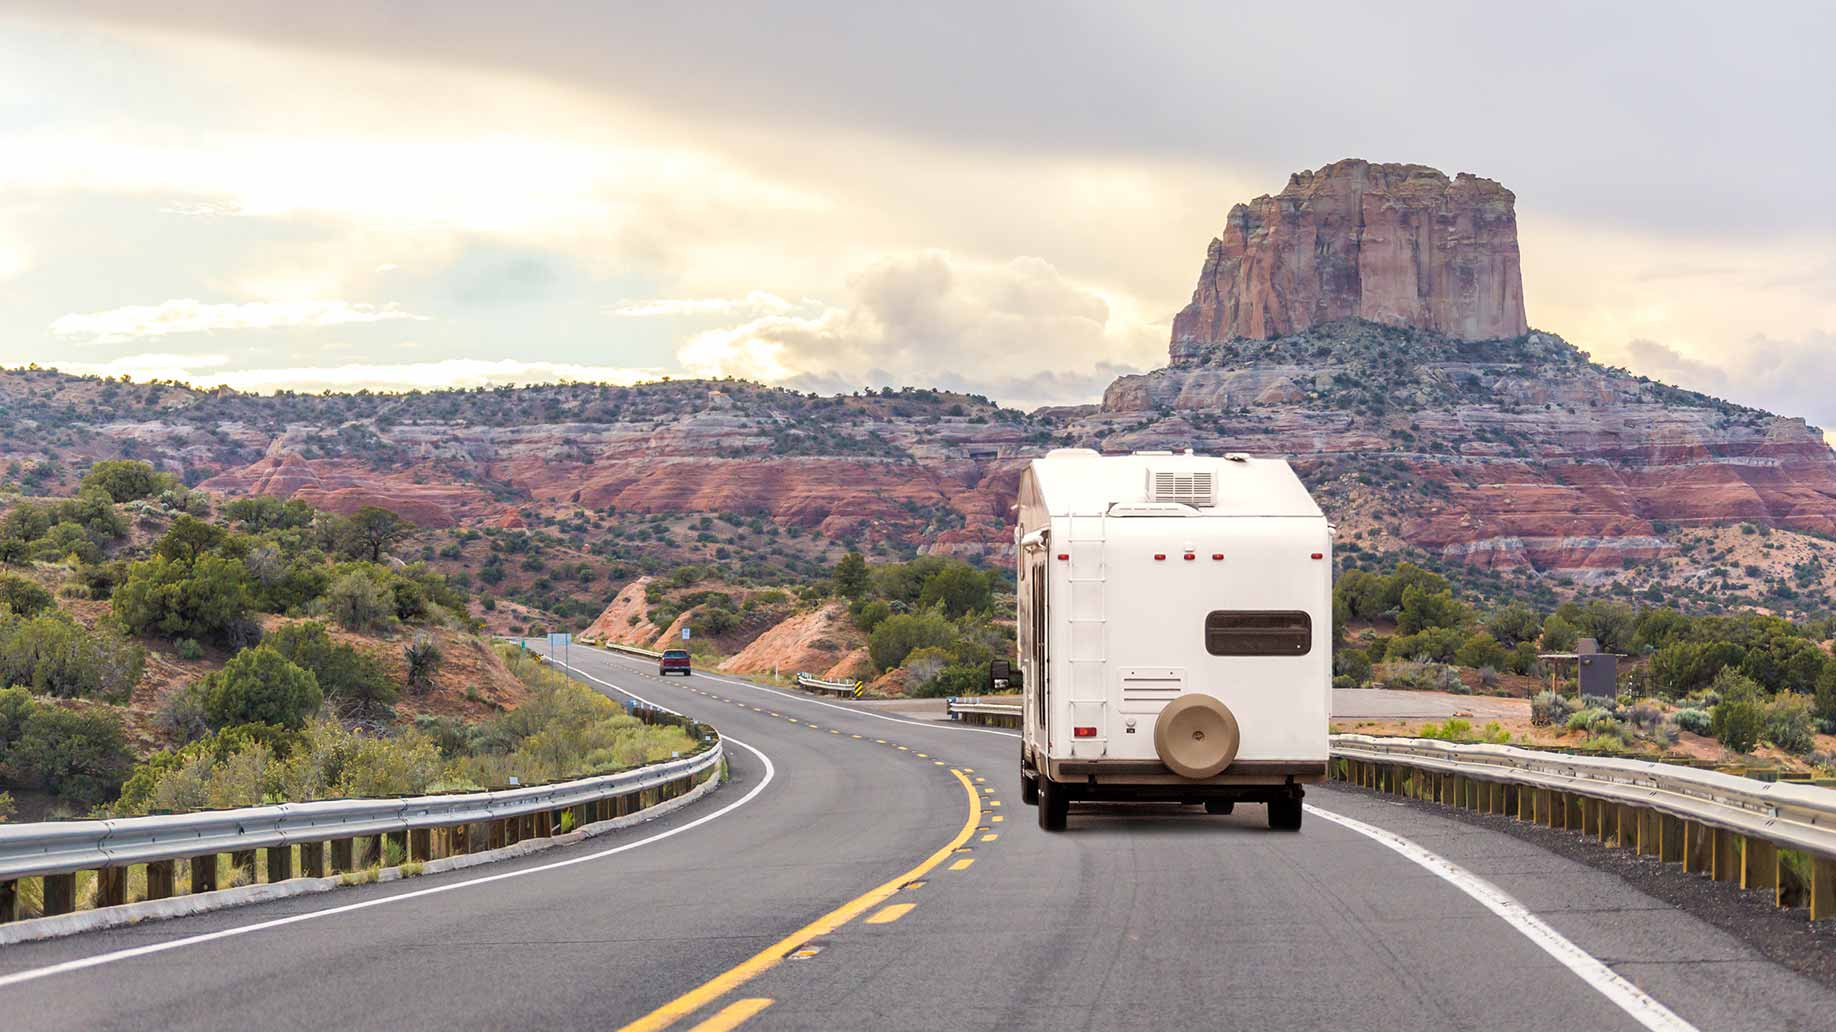 an rv camper traveling down a highway with rock formations in the distance